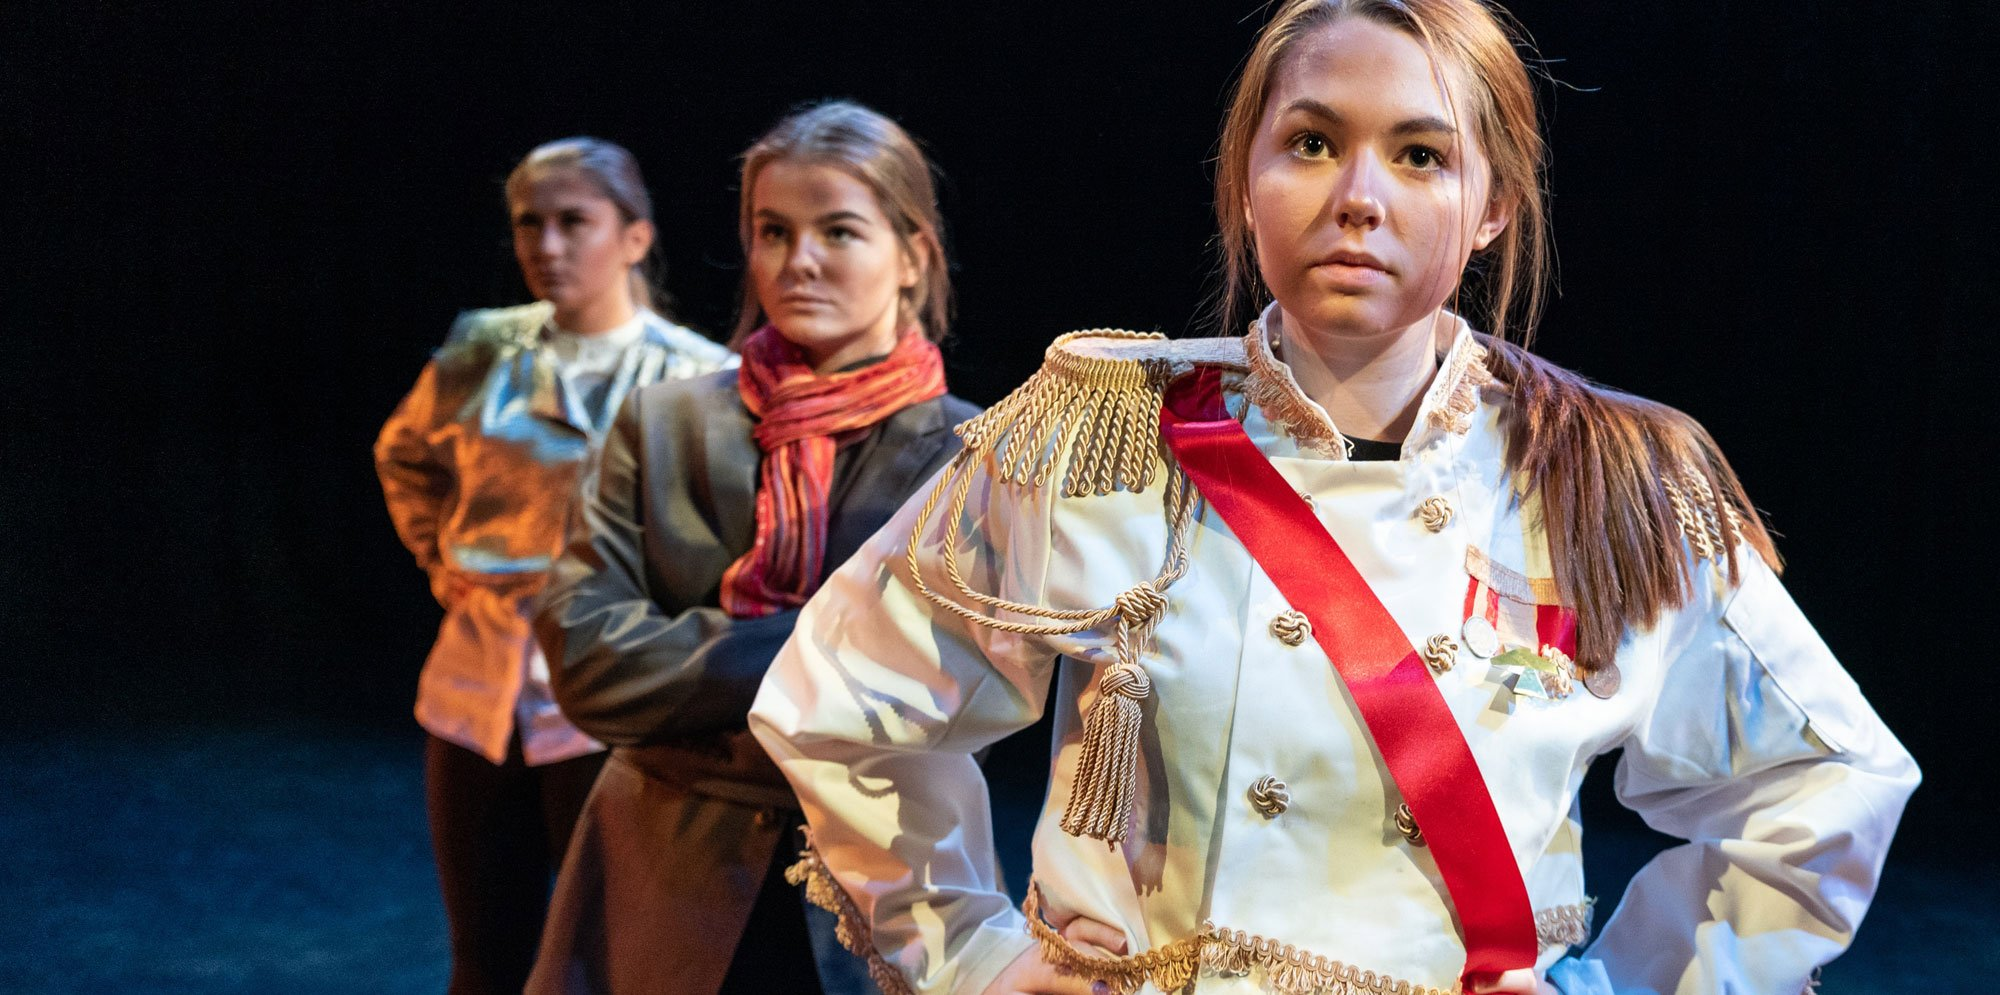 Shakespeare Schools Festival: three girls stand behind each other, staggered to the side. The girl in front is wearing a white royal uniform.